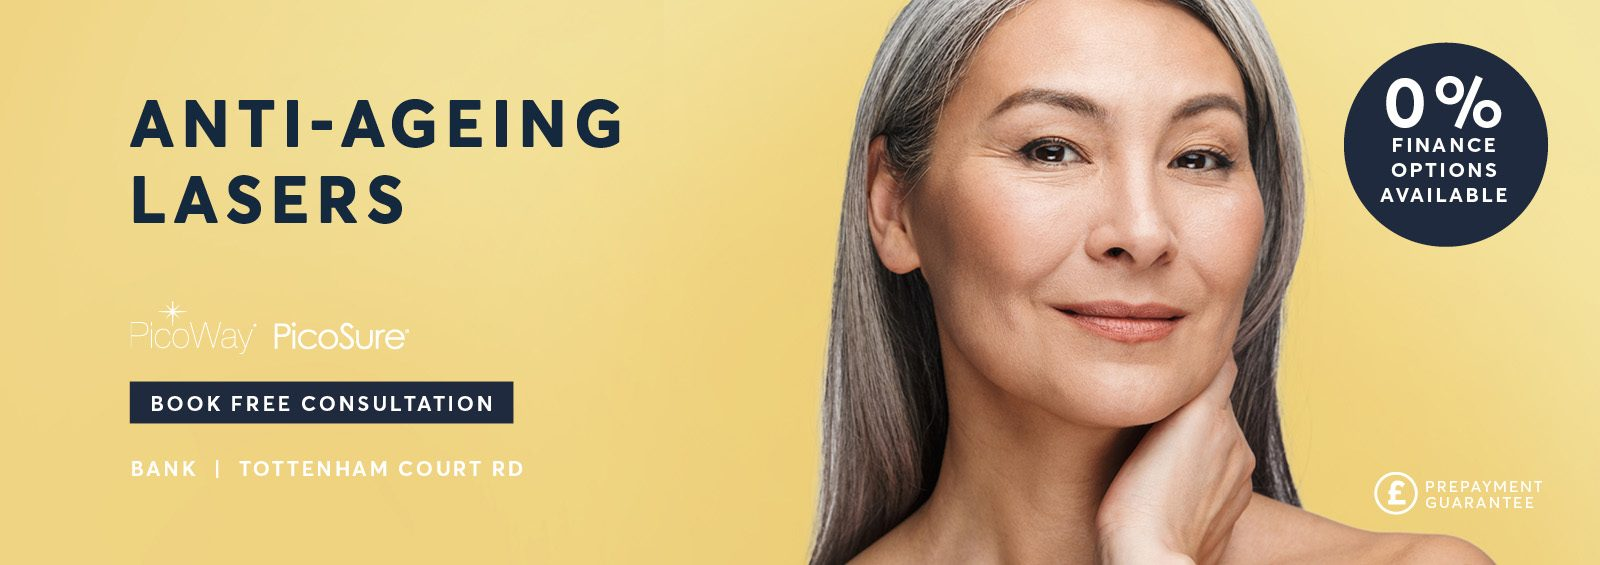 Anti-Ageing treatment with laser